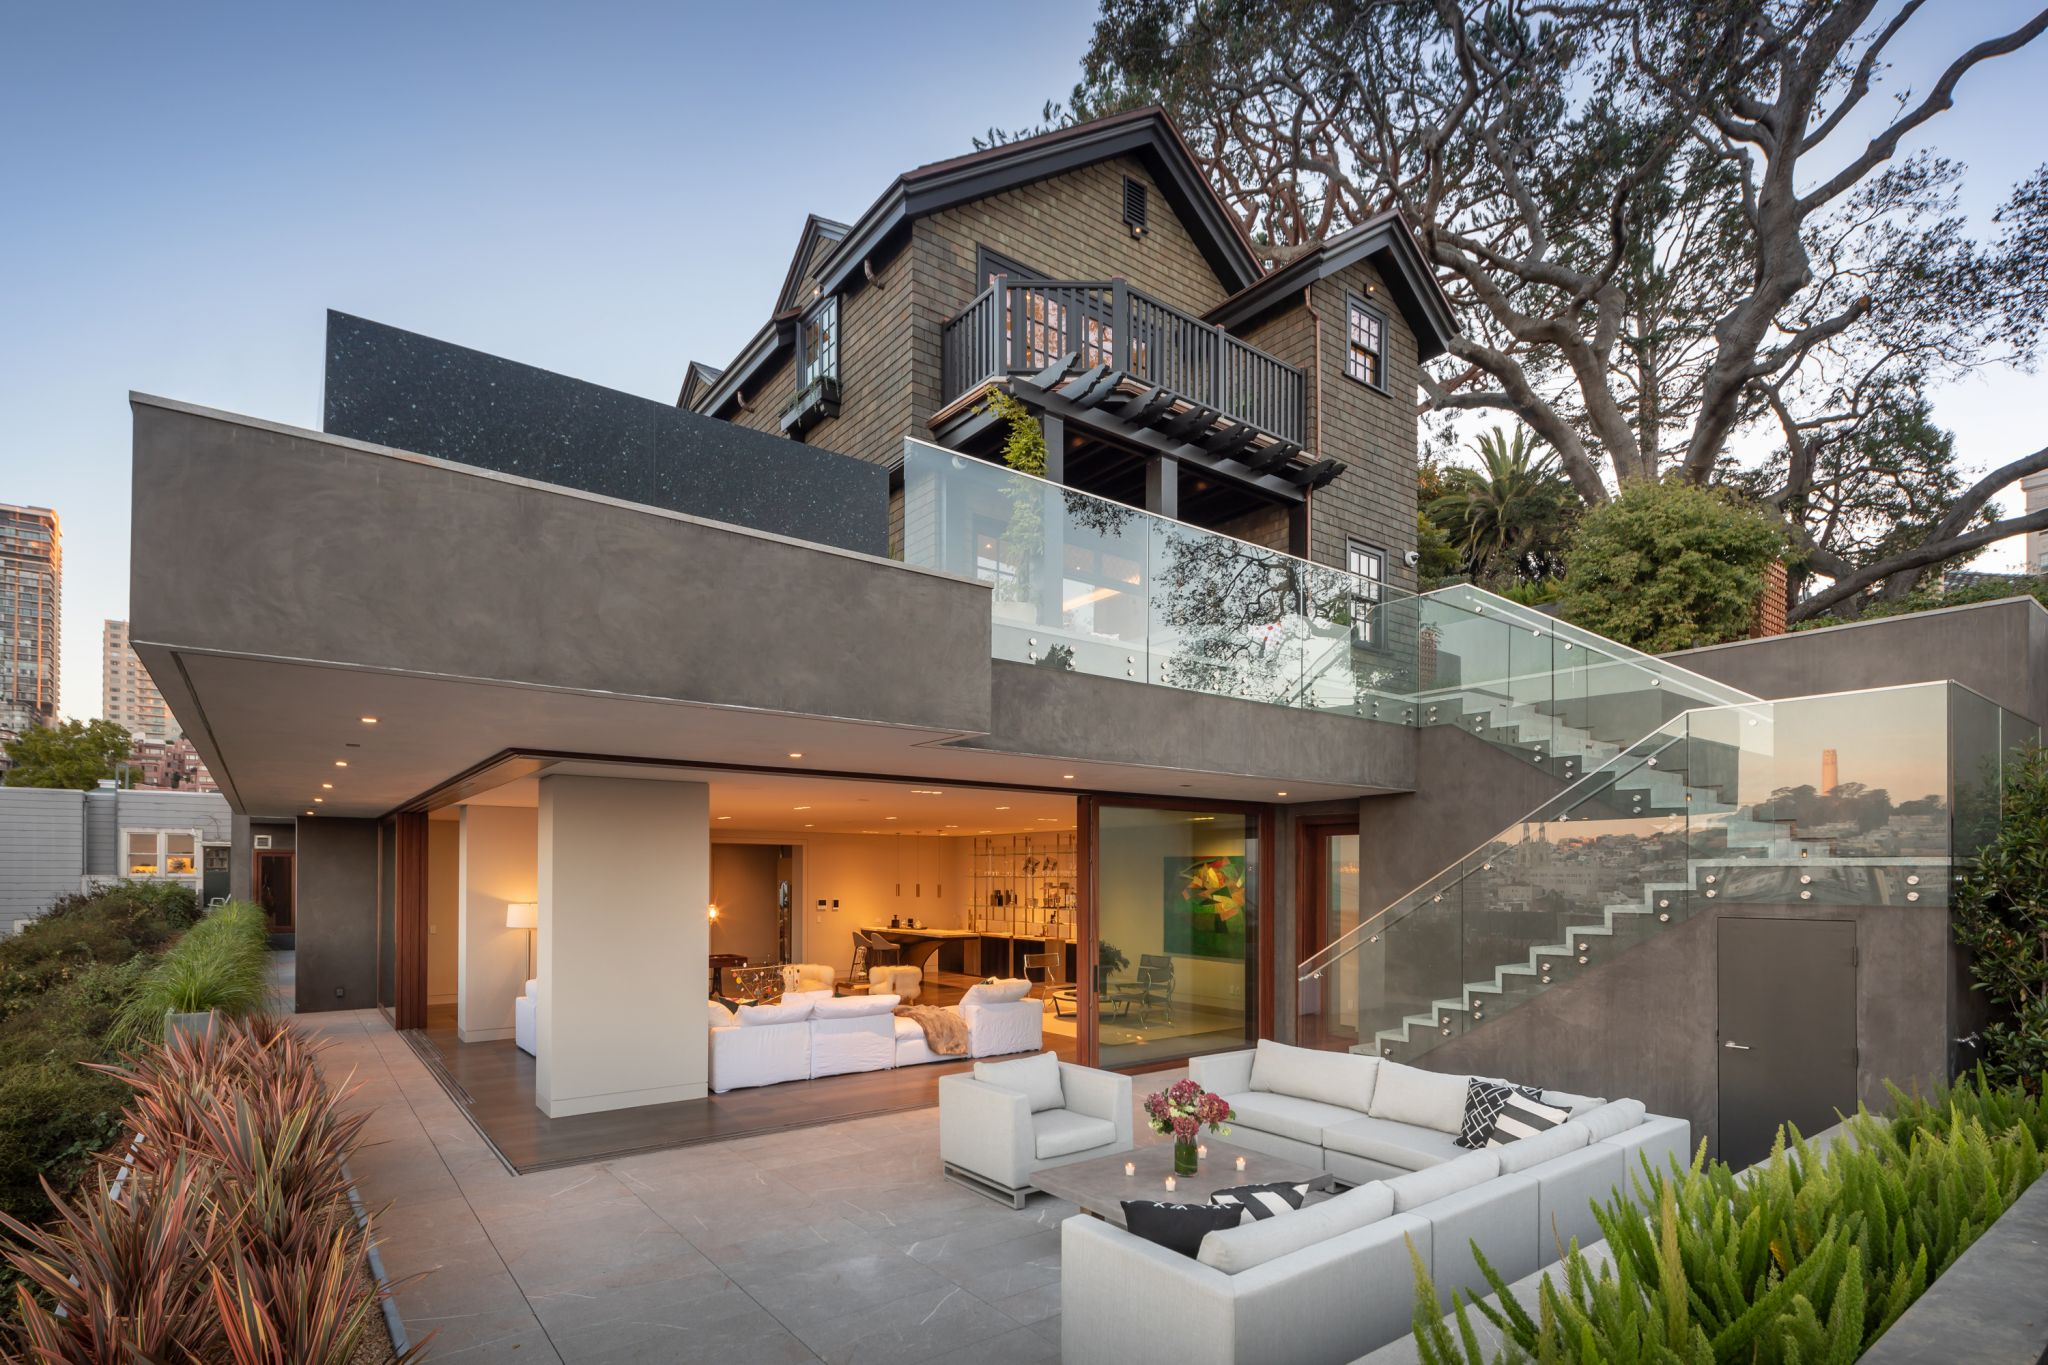 Inside san francisco 39 s most expensive home ever with an - How to take interior photos for real estate ...